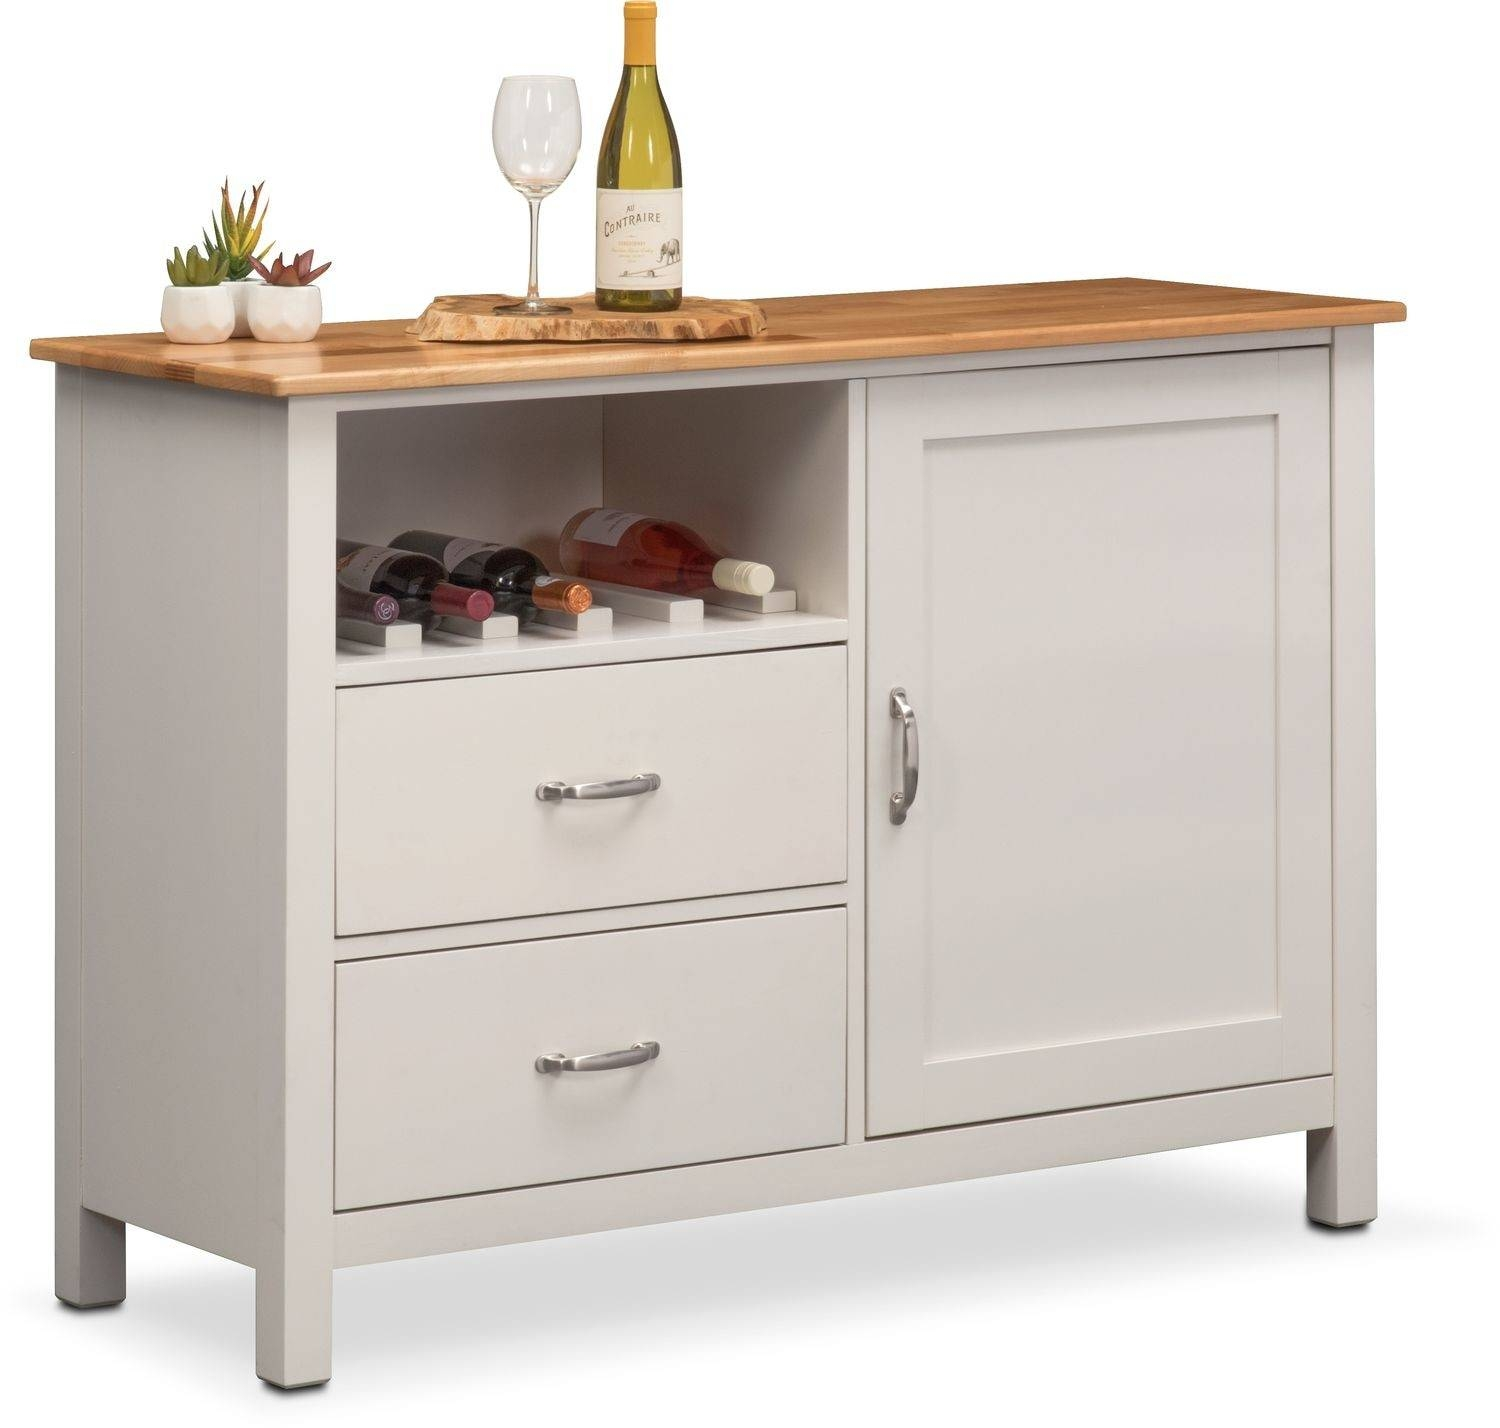 Nantucket Sideboard – Maple And White | Value City Furniture Inside White Sideboard Cabinet (View 12 of 20)